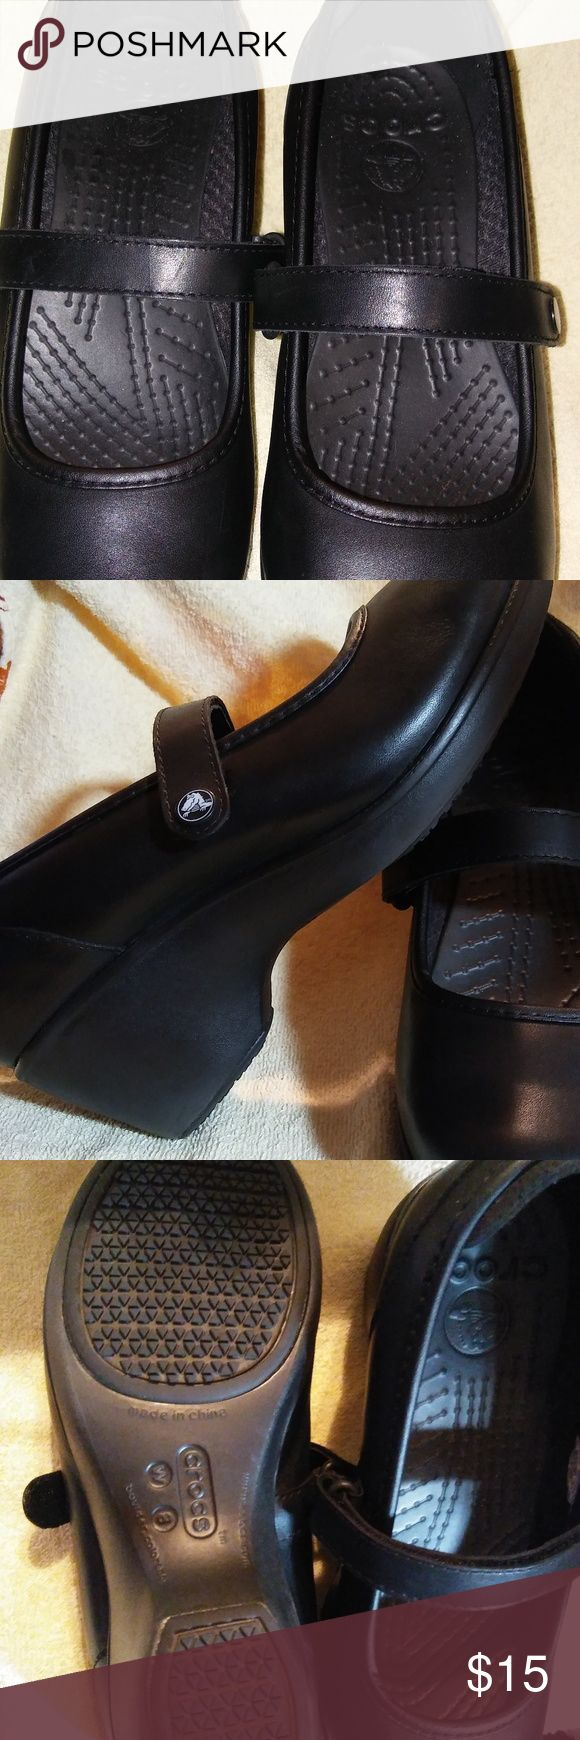 NWOT-Crocs Black Mary Janes I love these shoes! I bought them on sale through Crocs online and guess what...all sales final!! :-( They are too big for me and they slide on my feet so they sit in the closet. They are listed as a 8W but they are bigger than an 8, more like an 8 1/2. Anyway, the straps are adjustable with Velcro. Pretty little heel and just adorable, lasts forever, and you can't beat the comfort. Enjoy! crocs Shoes Wedges